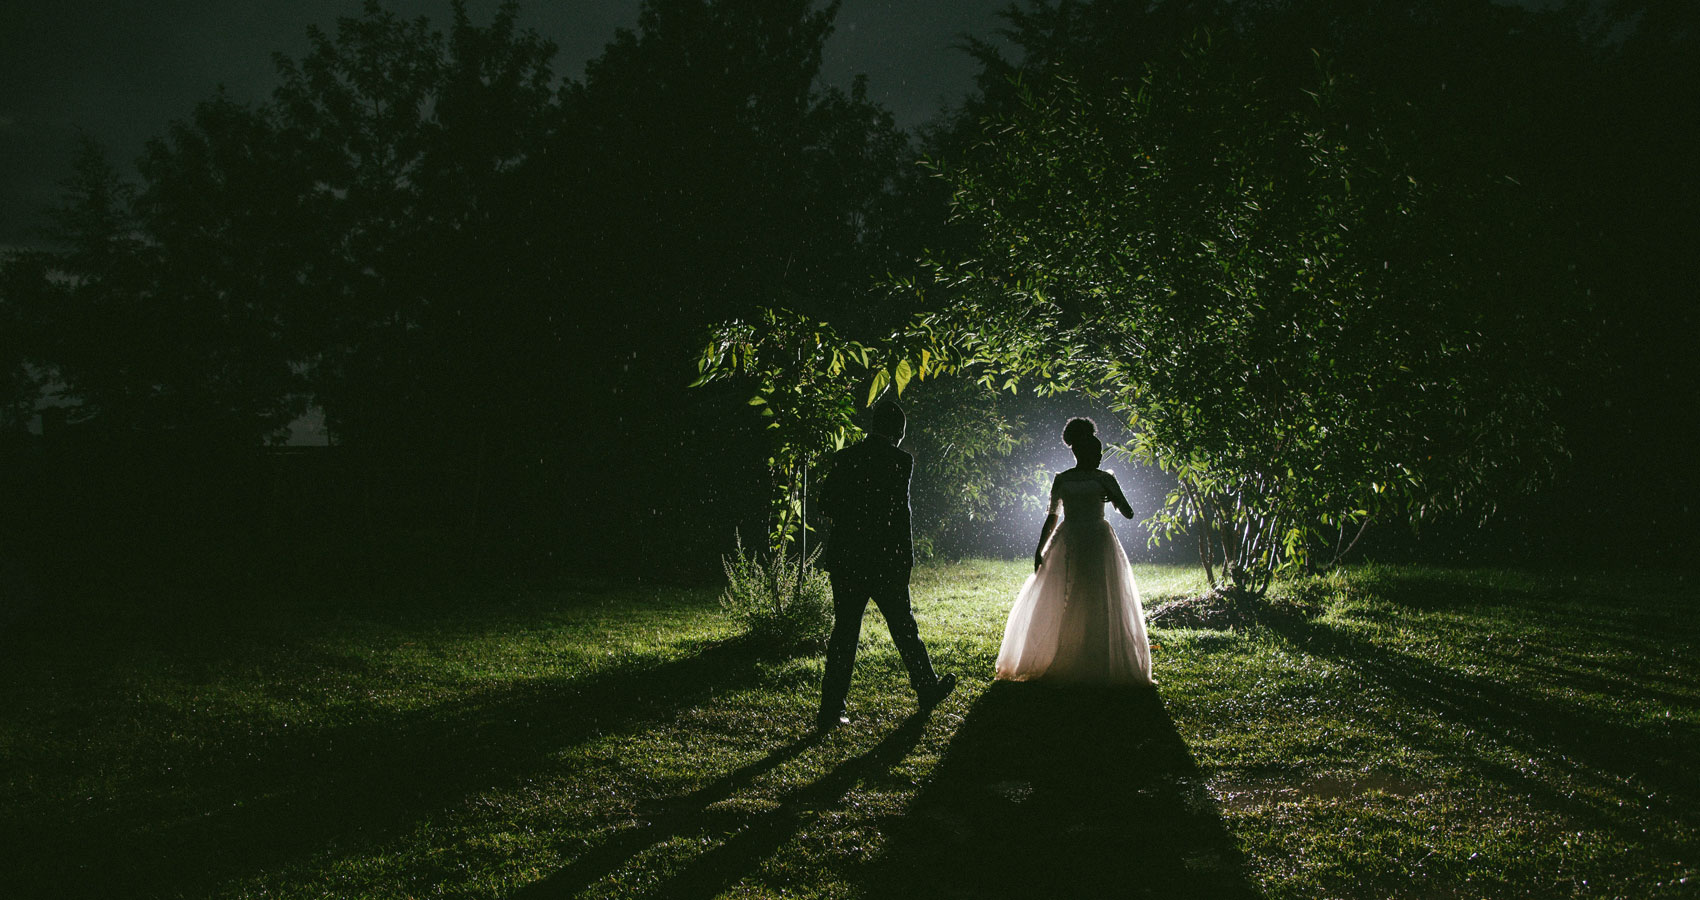 Take Me To The Altar, poem by John Chinaka Onyeche at Spillwords.com